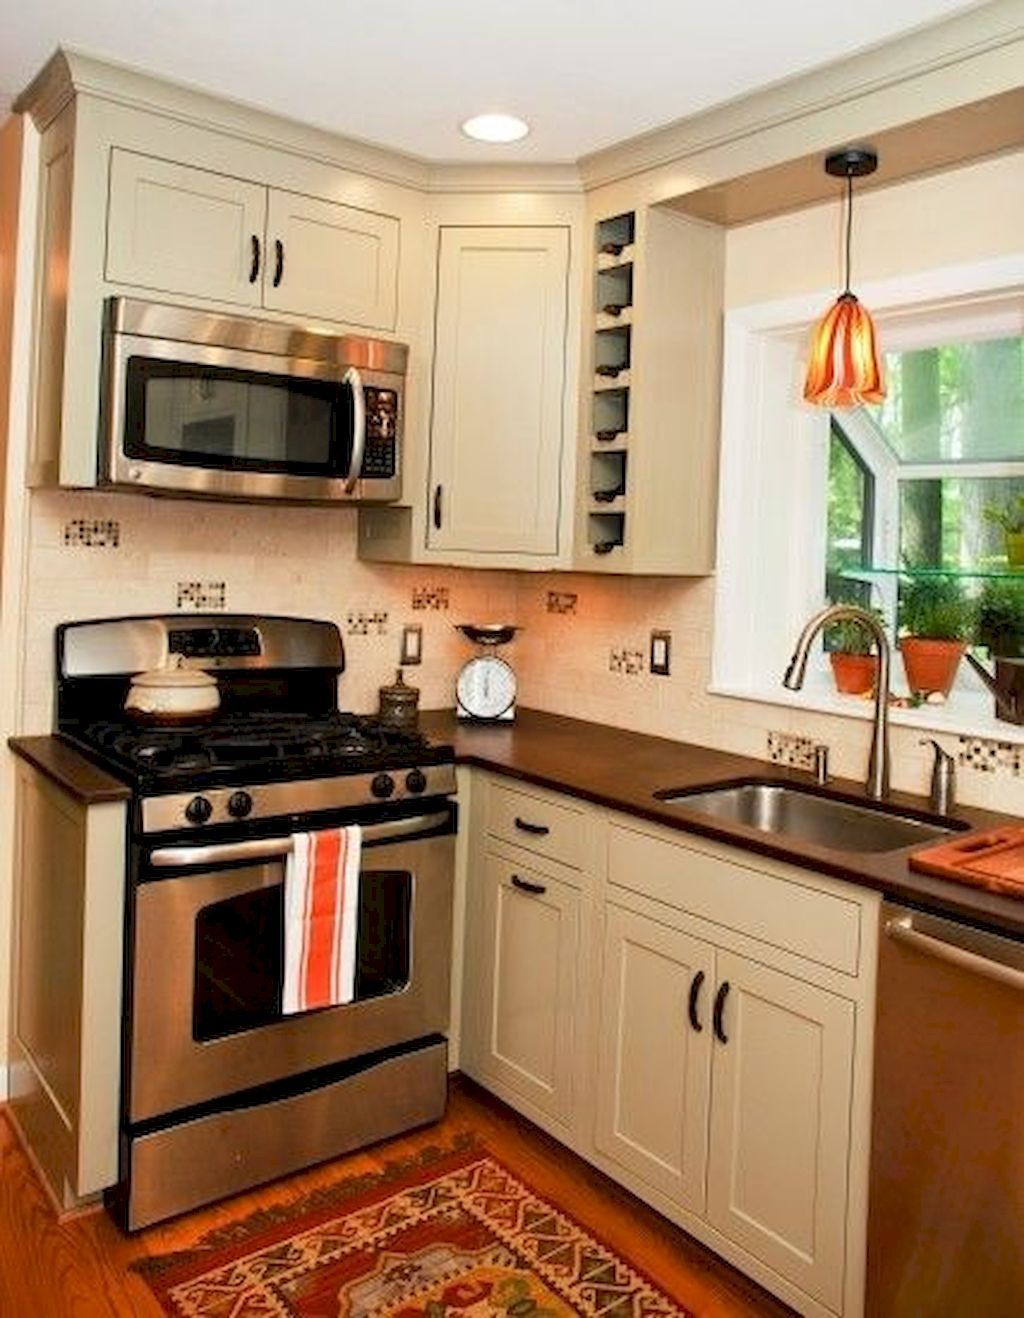 Small Kitchen Plan And Design For Small Room Home To Z Kitchen Remodel Small Kitchen Plans Kitchen Layout